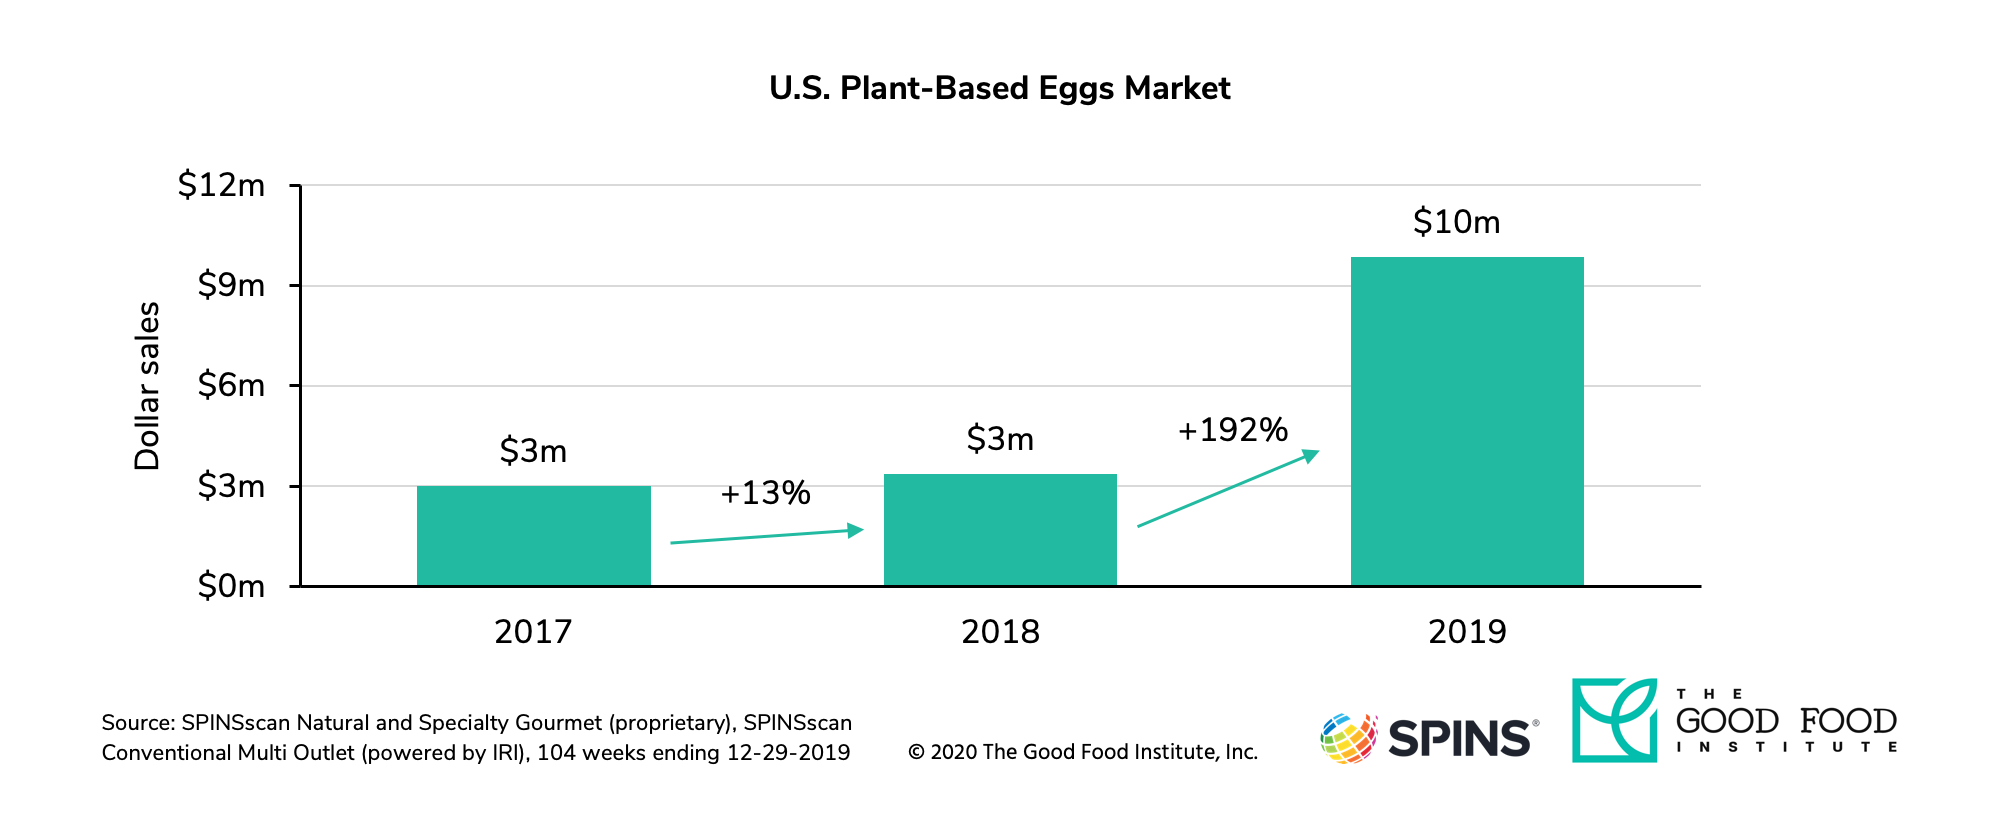 U.S. retail sales of plant-based eggs grew 192 percent in 2019.